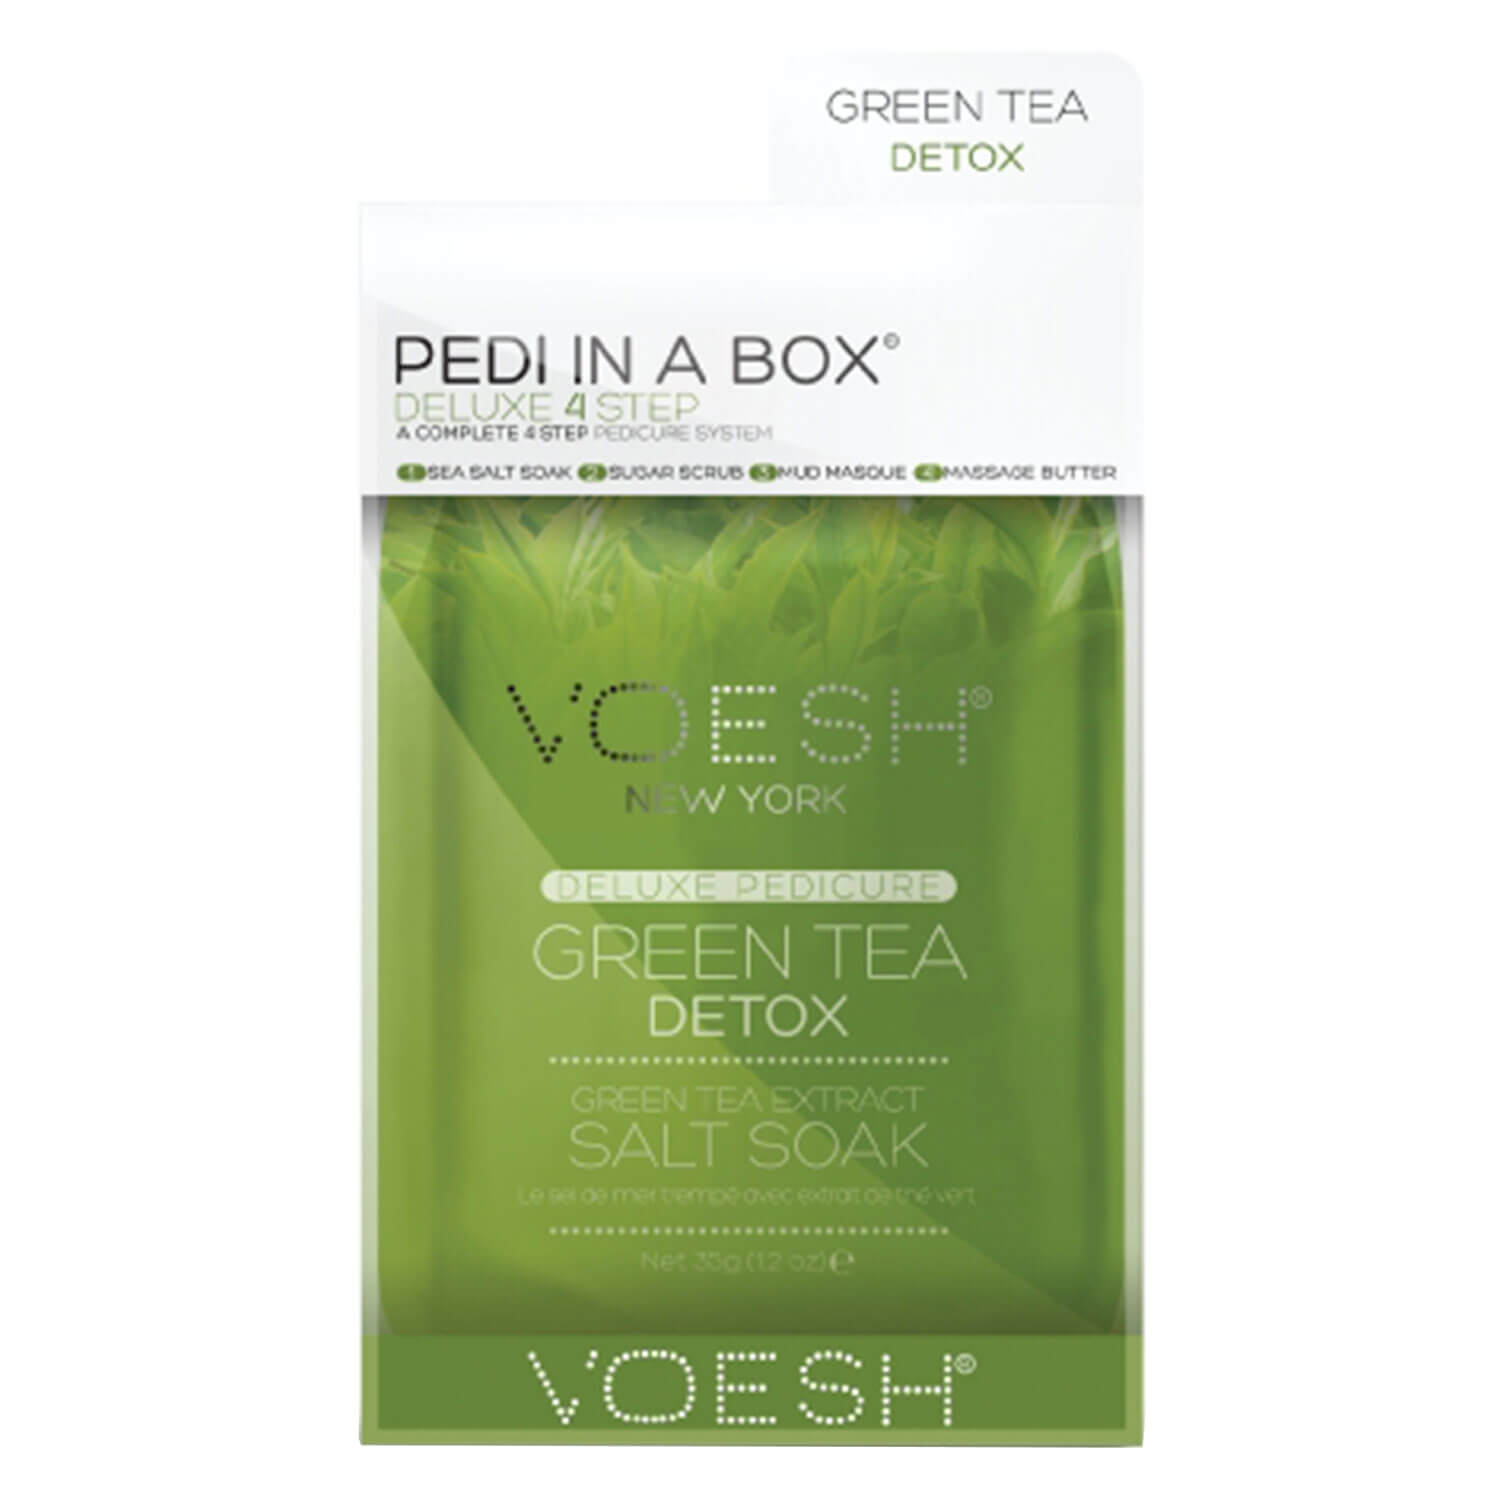 VOESH New York - Pedi In A Box Deluxe 4 Step Green Tea